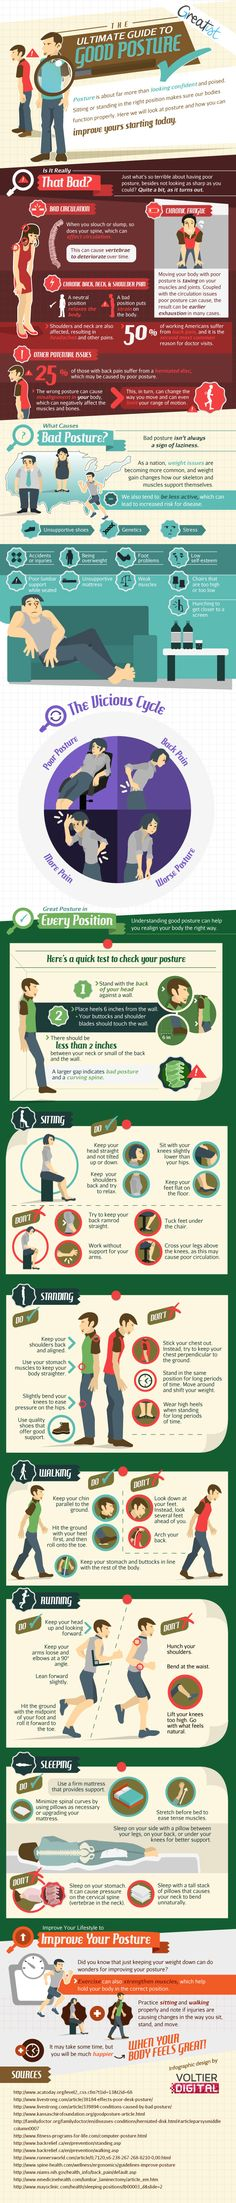 How to improve you posture - Infographic - Imgur